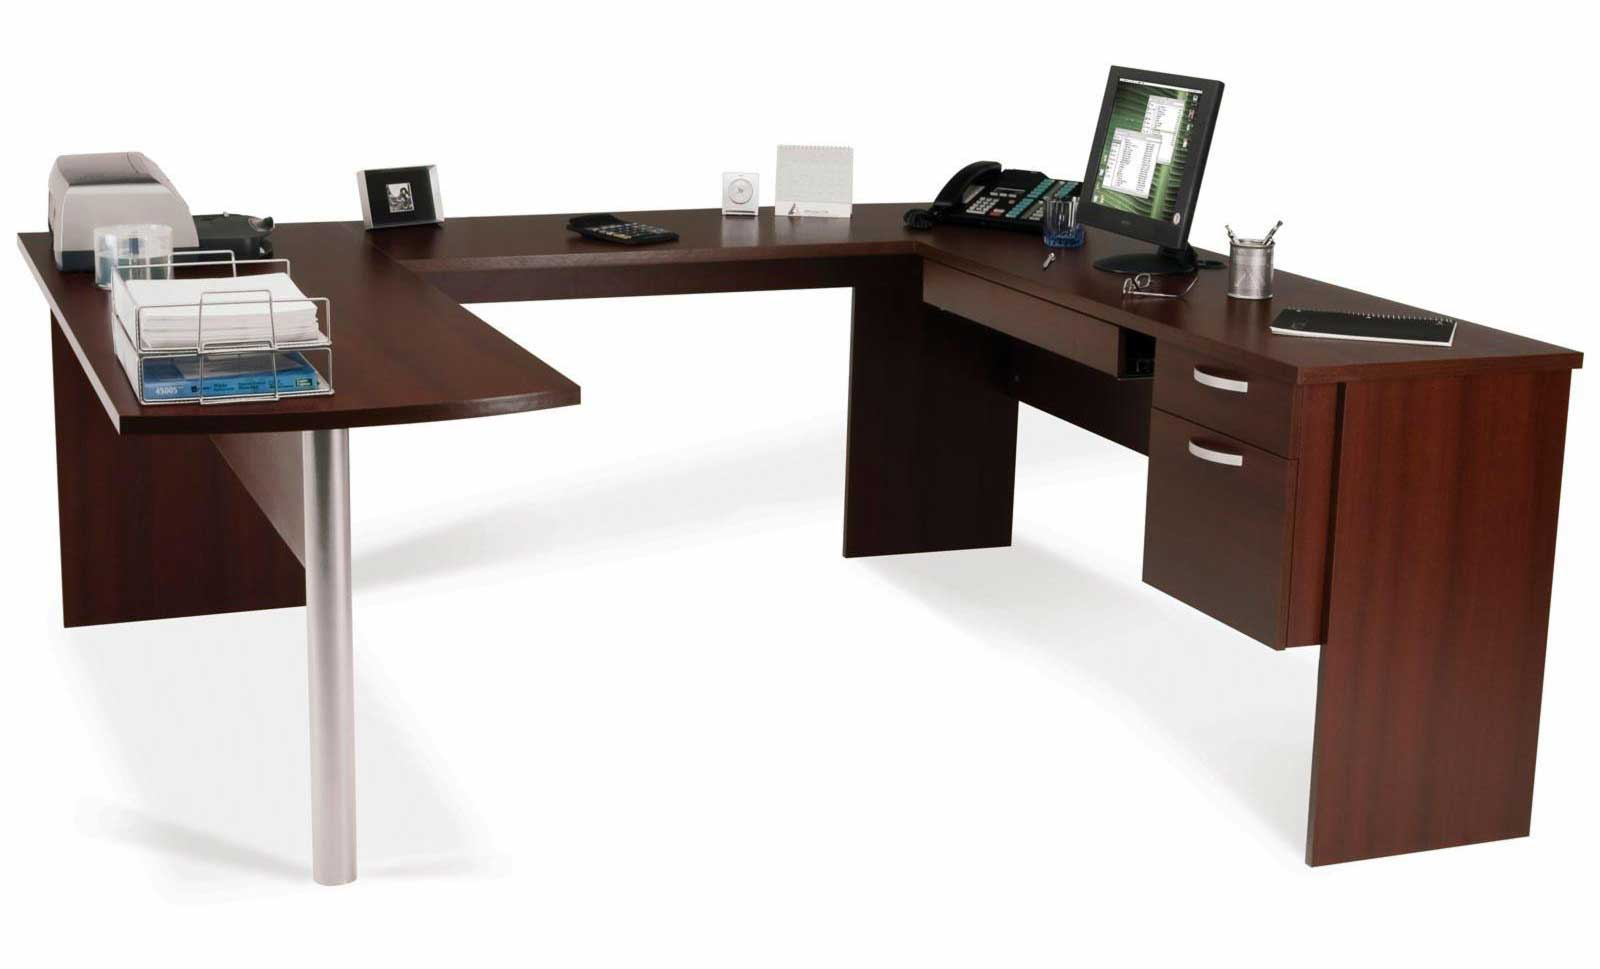 Bestar Inspace Oak U-Shaped Corner Computer Desk